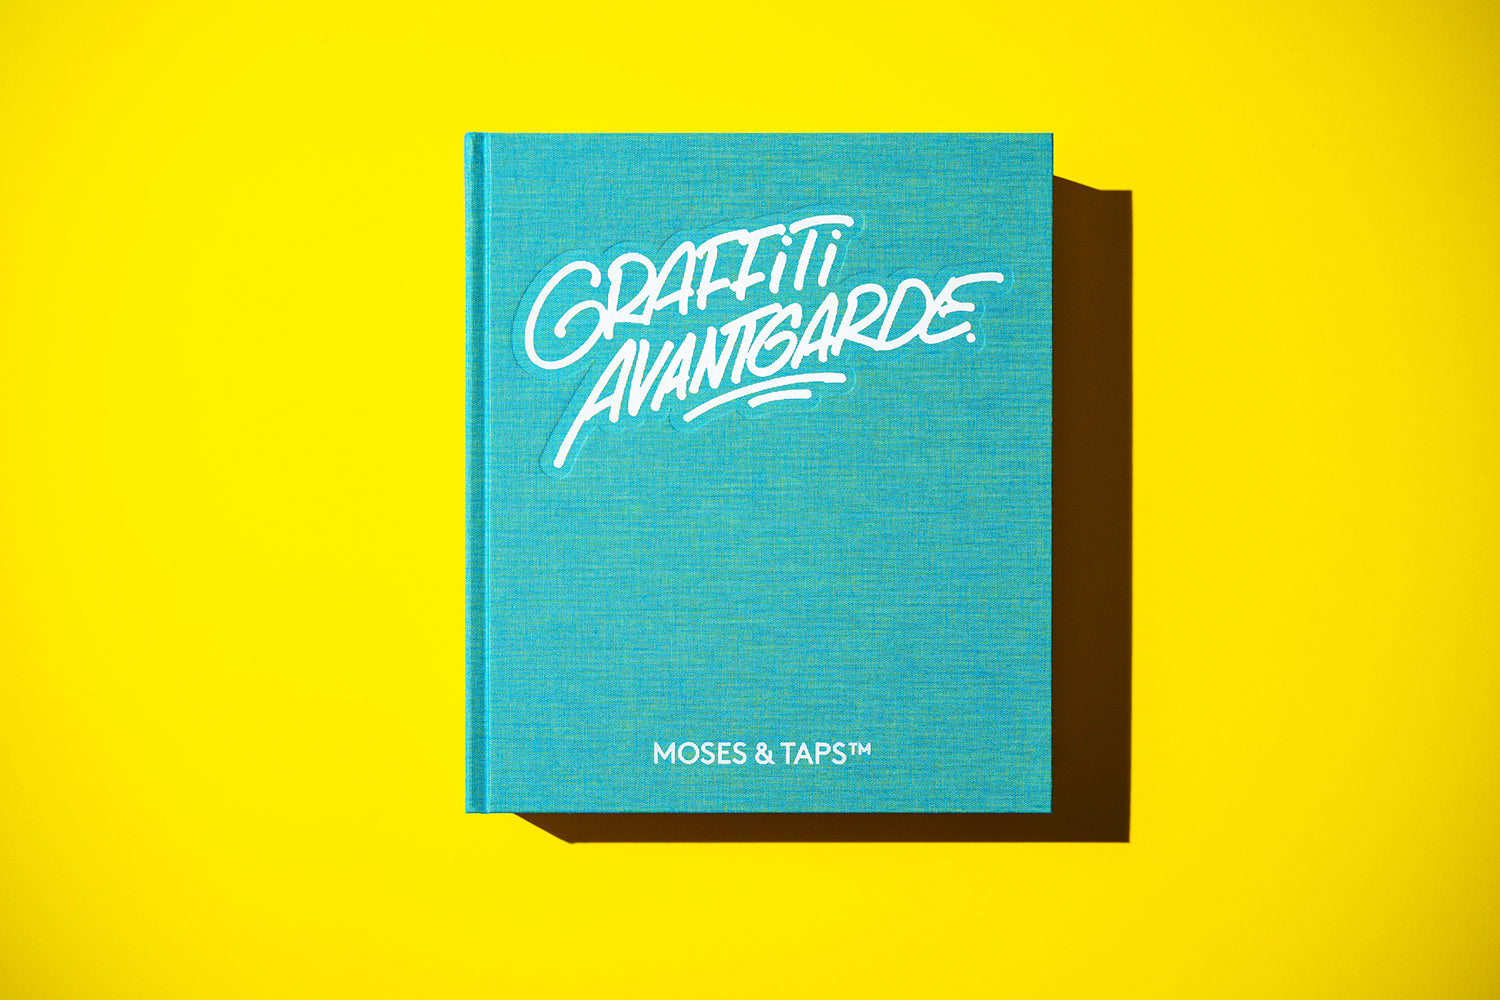 GRAFFITI AVANTGARDE BOOK BY MOSES AND TAPS REGULAR EDITION THE GRIFTERS PUBLISHING